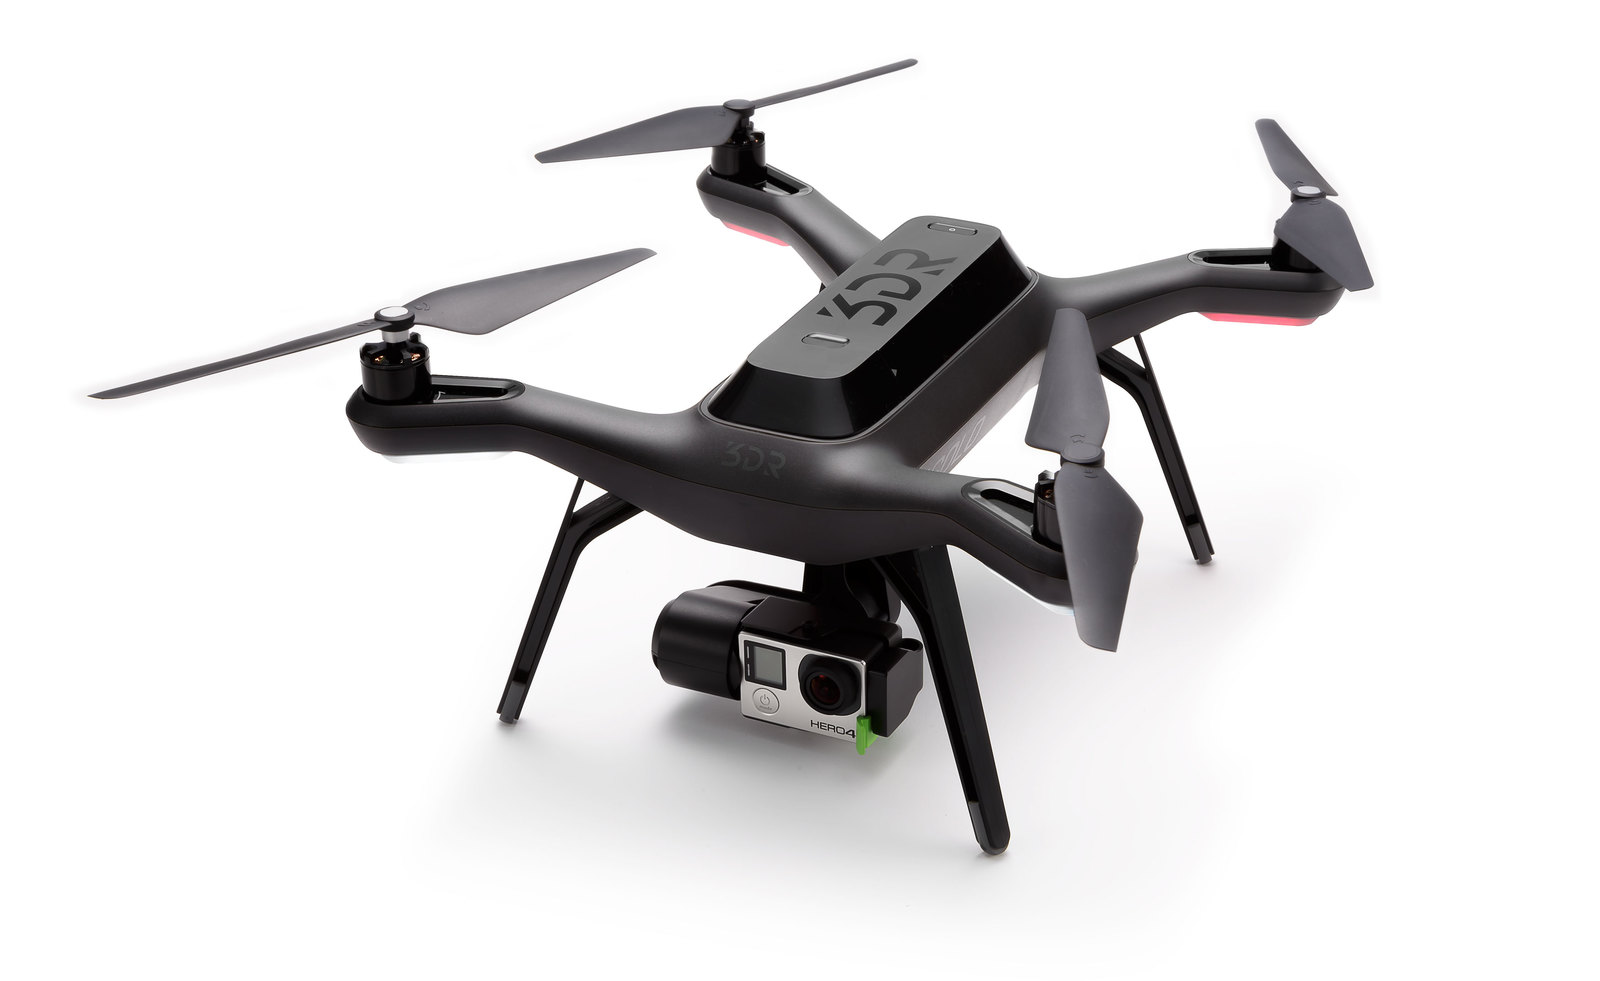 3DR Solo Aerial Drone Image